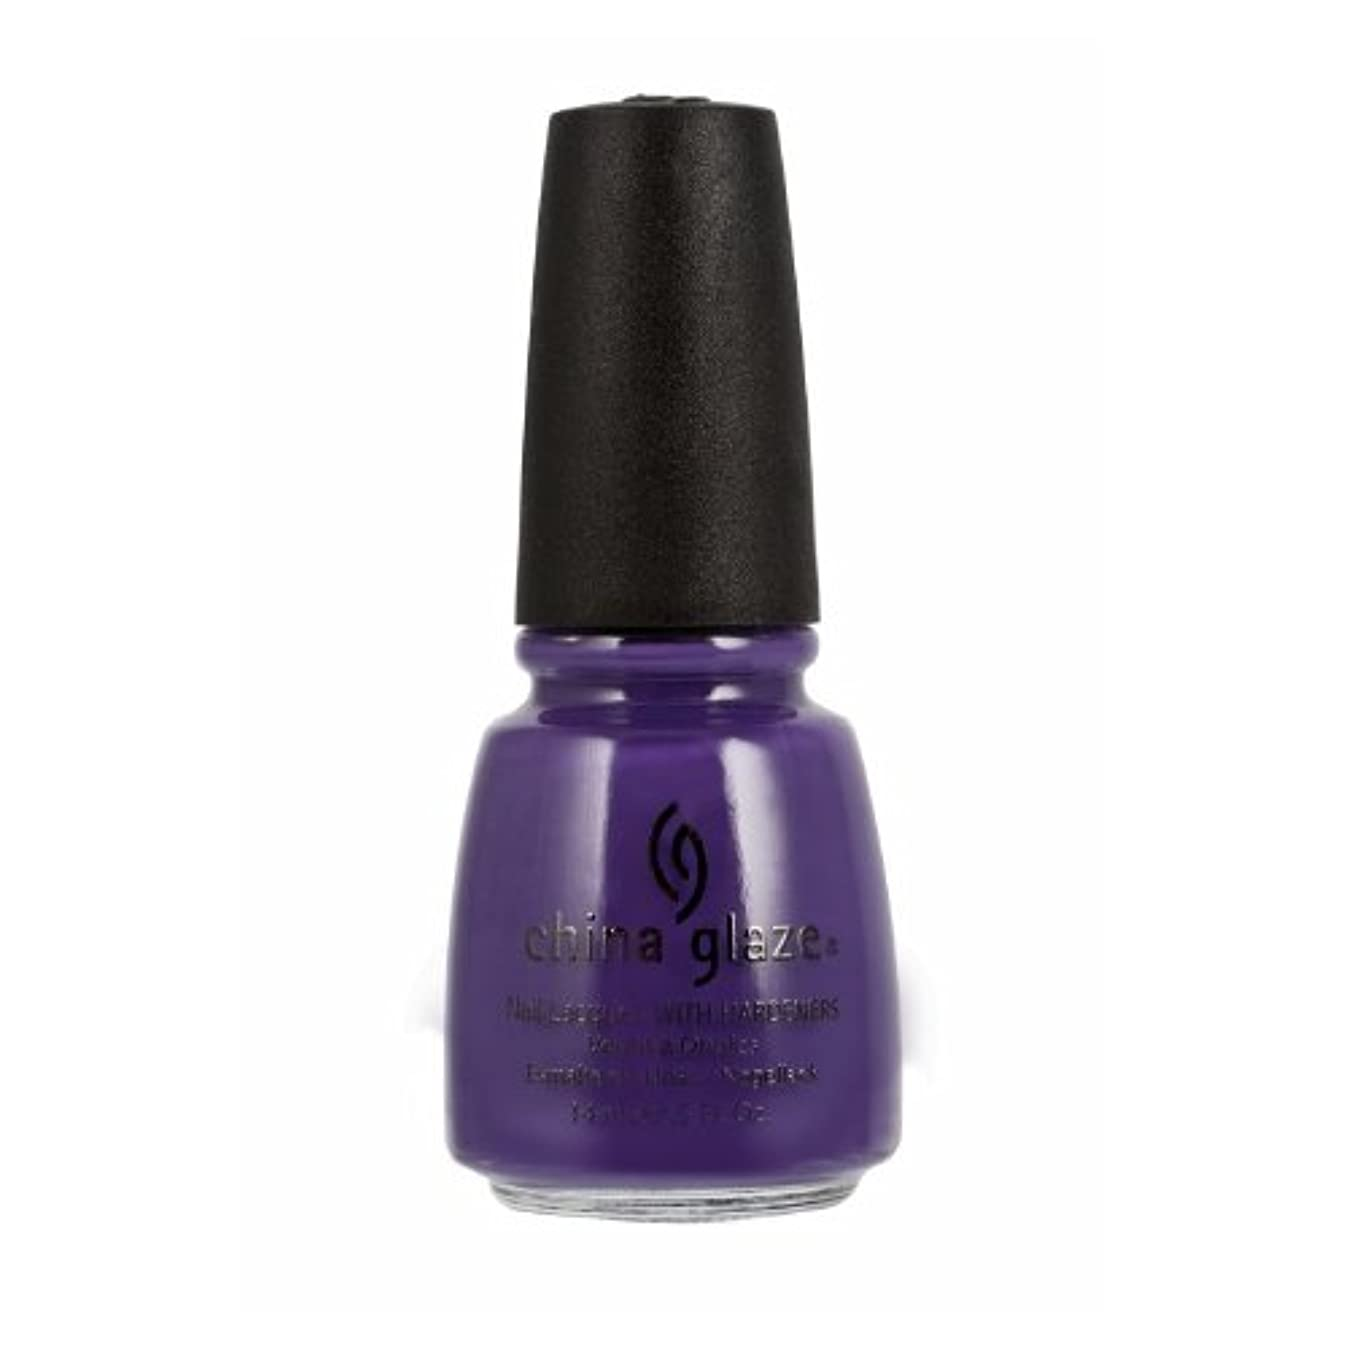 原理肉腫放棄されたCHINA GLAZE Nail Lacquer with Nail Hardner 2 - Grape Pop (並行輸入品)